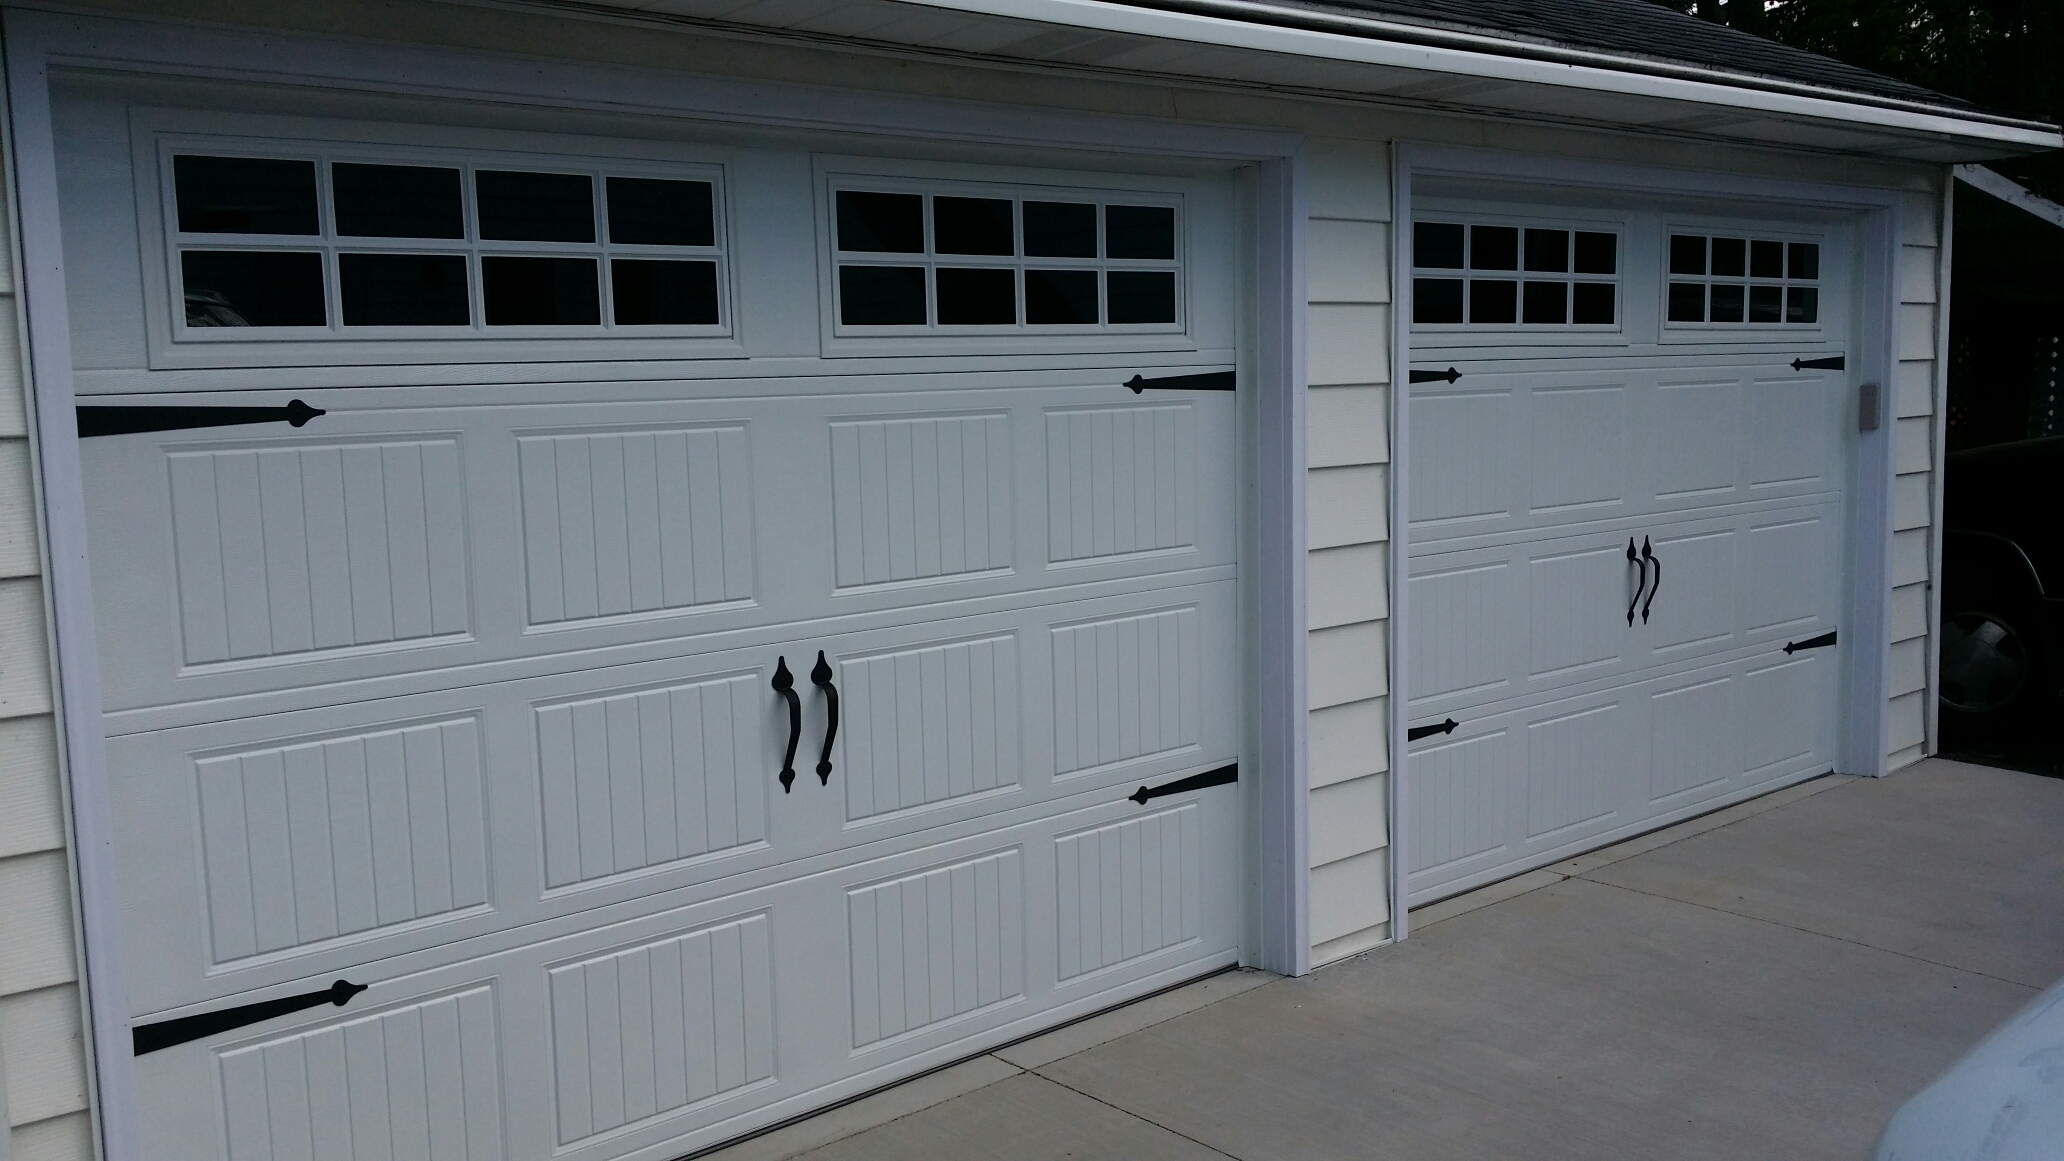 Lauderdale, MN - Jon installed Deco Hardware on 2 North Central RP25 9X6'6 garage doors that were just installed On 4/30/2015